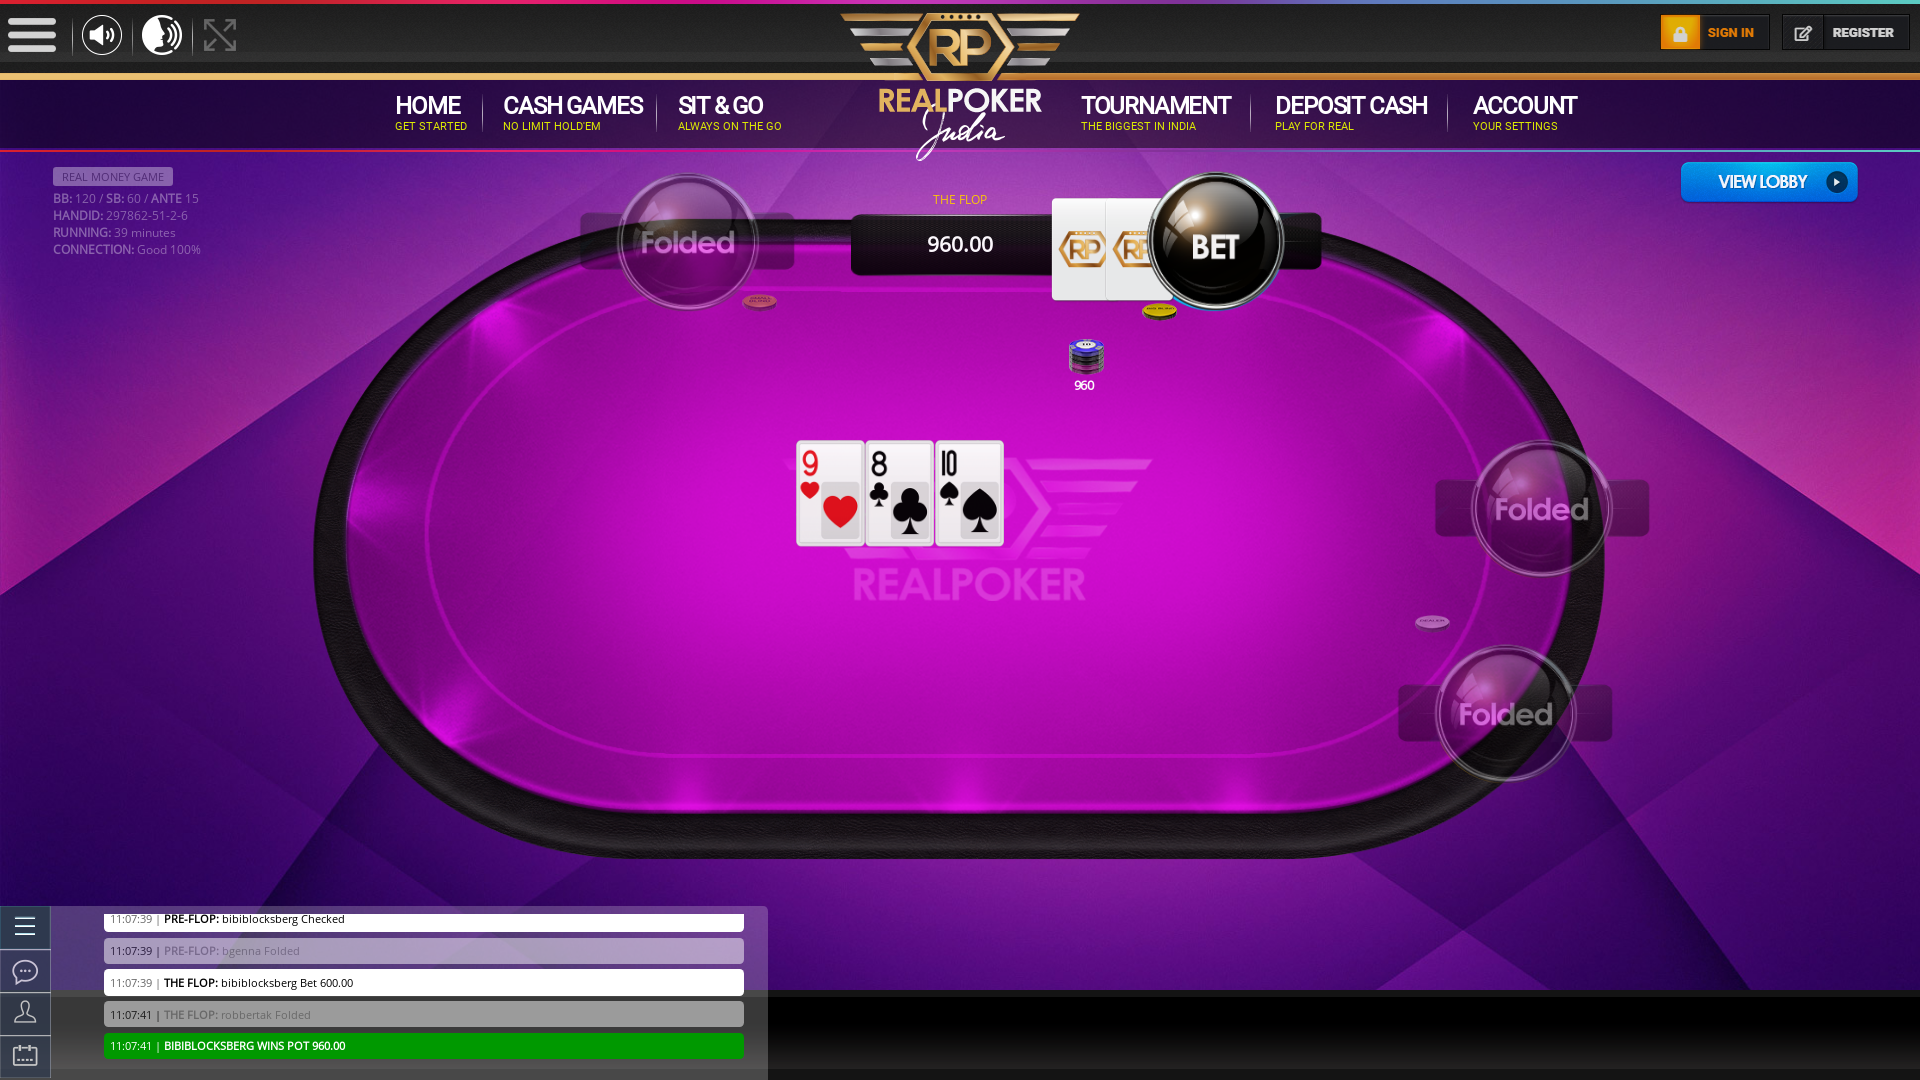 10 player texas holdem table at real poker with the table id 297862